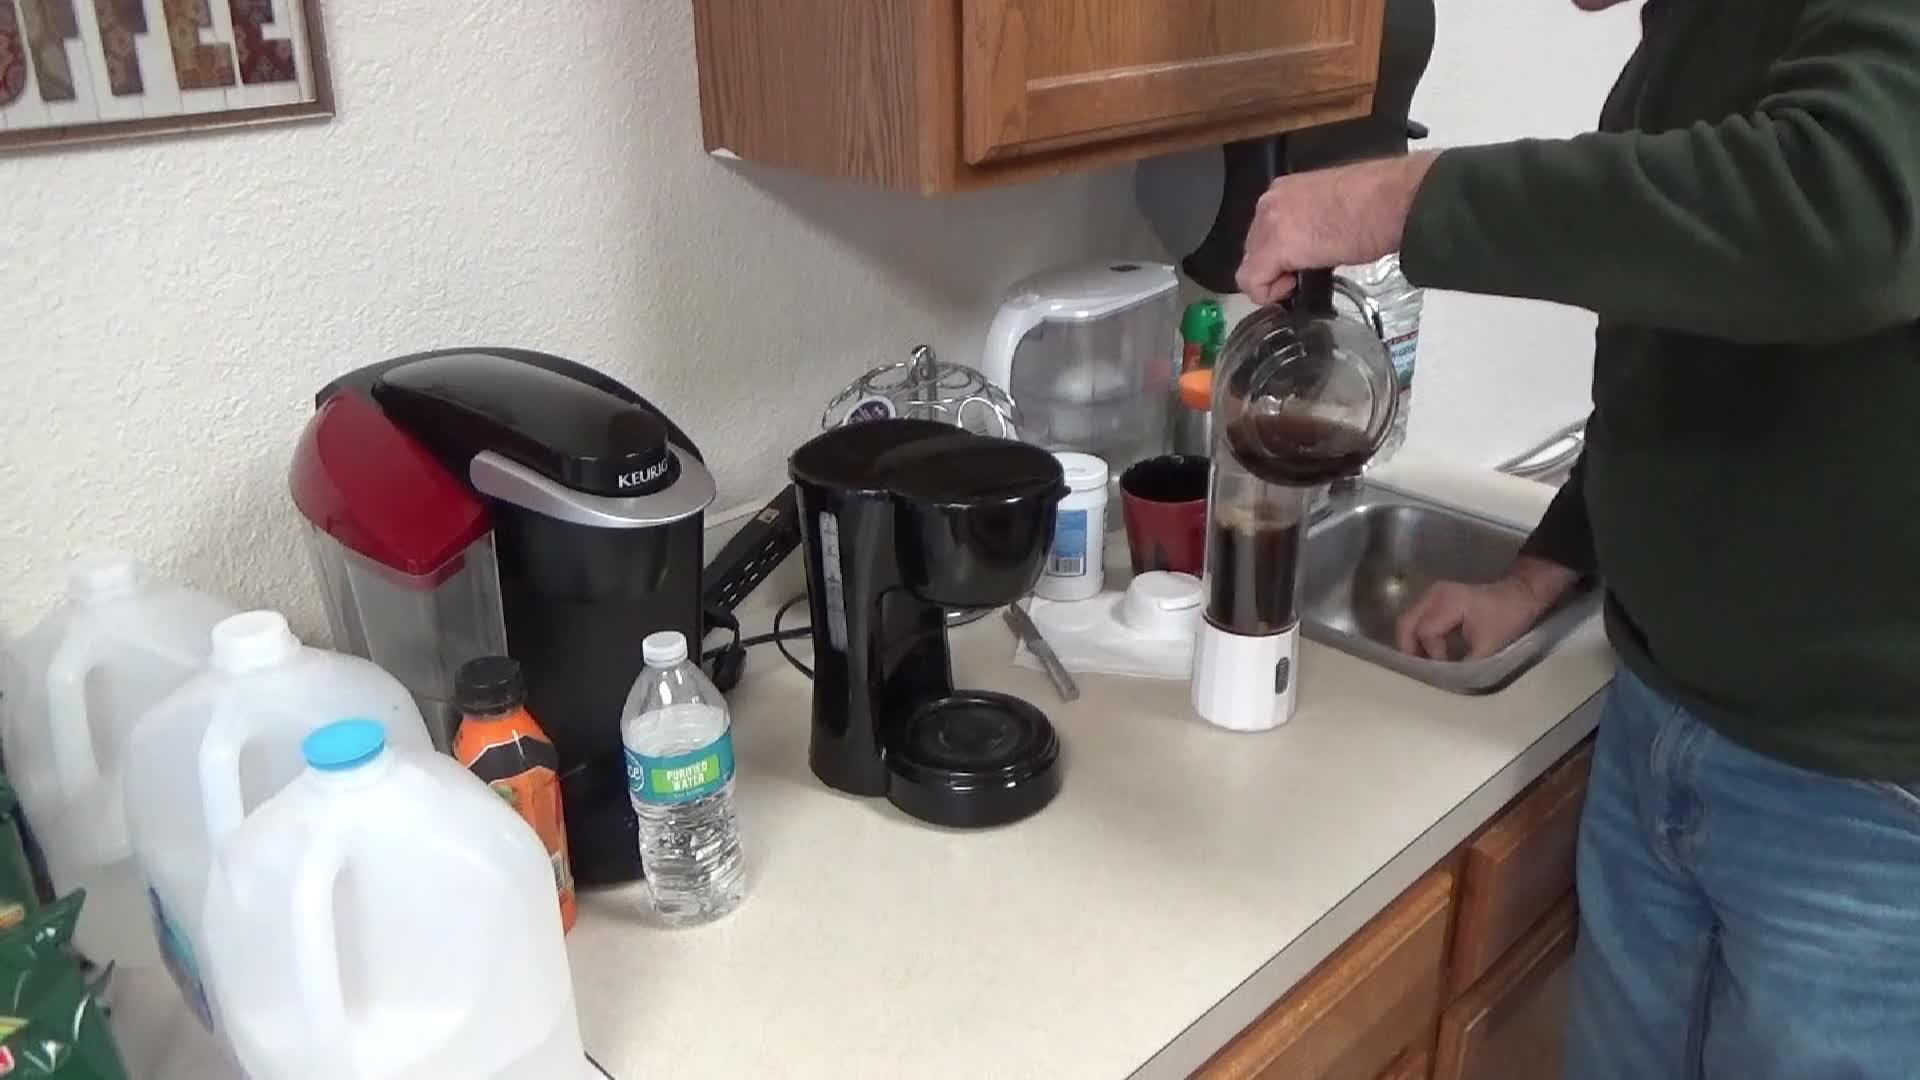 Coconut Oil In Coffee Is Healthier & Michelle Helping Make It